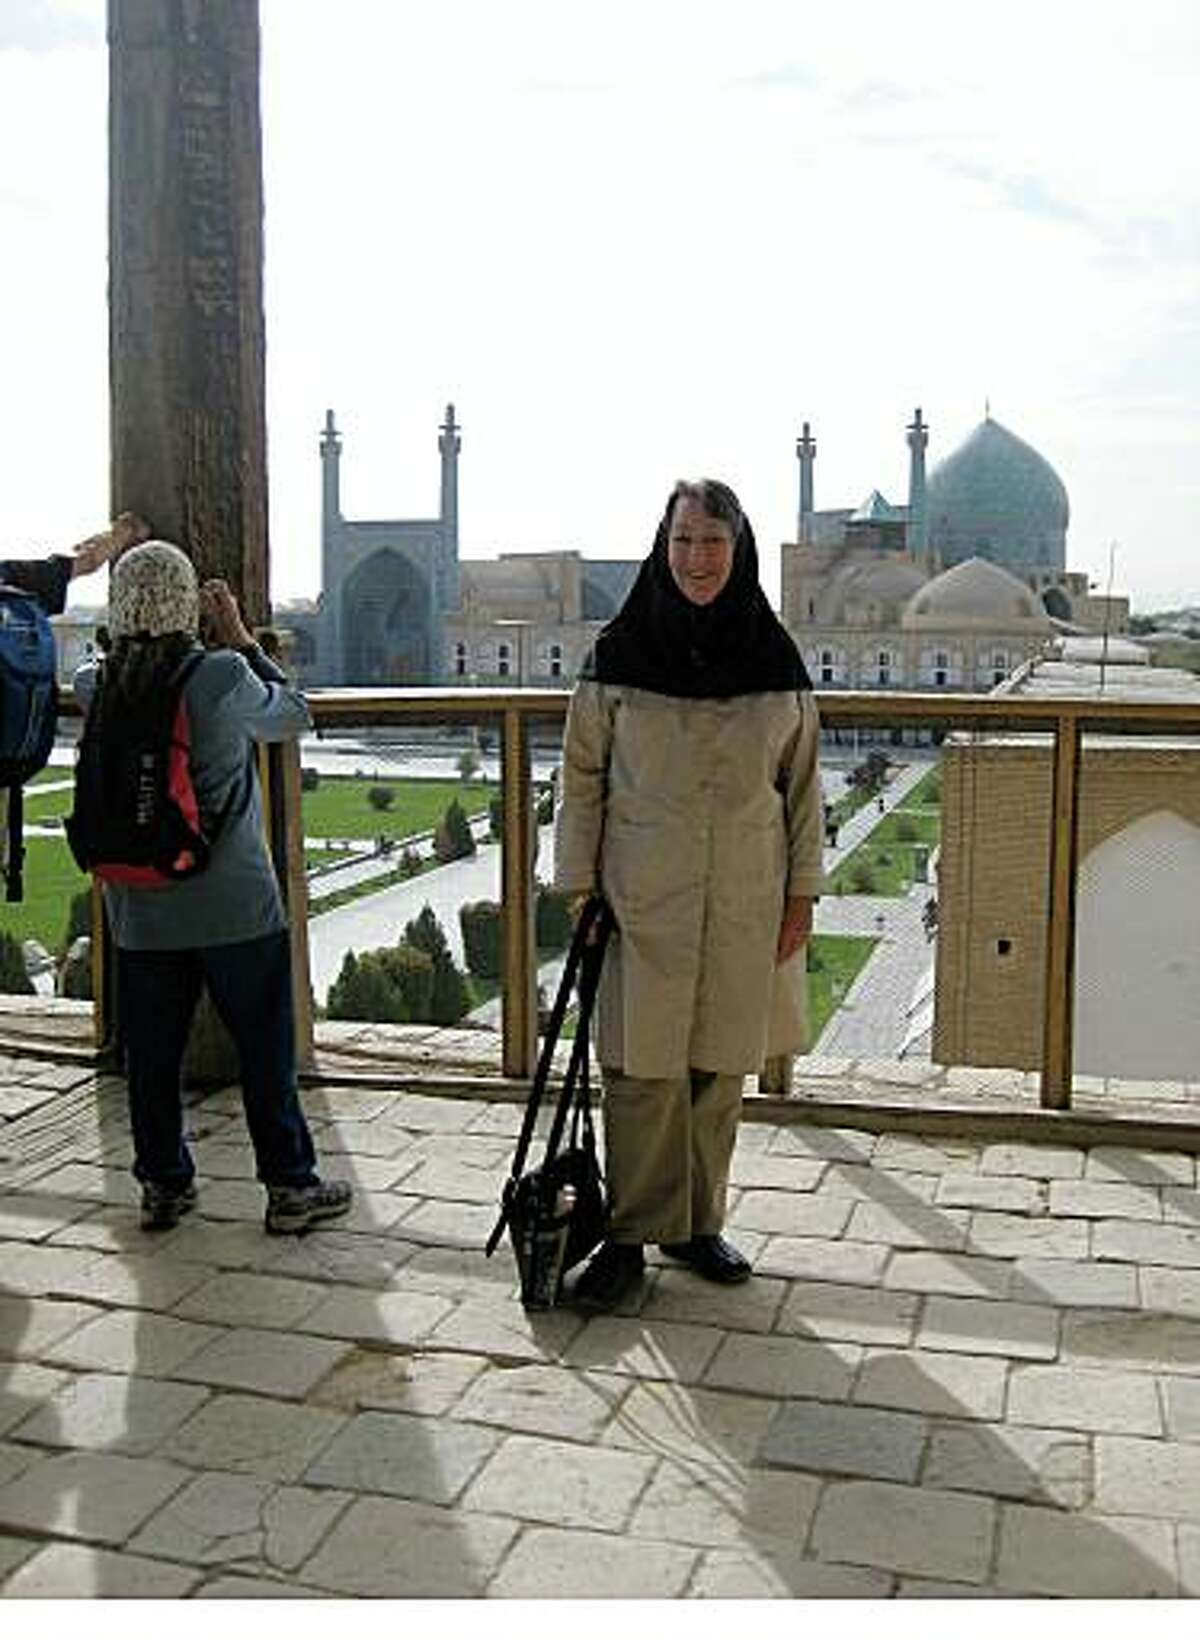 Susan Shawl, Oakland, CAEmail: jazzfan1@sbcglobal.netDaytime phone number: 510-652-3362Just back from: Iran: Tehran, Yazd, Shiraz, Isfahan, Tabriz I went because: I had heard many negative things about Iran via our media and I wanted to see and experience it for myself, plus the art/architecture is so great.Don't miss: Persepolis ? this place is amazing. It was the Persian capital between 500 to 300 BC. And they are still excavating.Don't bother: Worrying about how Americans are treated. The Iranian people are very interested in speaking with Americans, learning about us and no alcohol for 3 weeks is not unbearable.Coolest souvenir: 2 small (old, not new) Persian rugs.Worth a splurge: Abbasi Hotel in Isfahan, at least for a meal of their special soup and the Moshir Garden Hotel in Yazd or any other renovated historic caravansary.I wish I'd packed: Iran is a very modern country and the only thing I could have brought more of was hand cream, because it was very dry in the south.Other comments: I traveled with 9 people on a trip sponsored by Global Exchange. We had opportunities to meet 1 on 1 with locals in the arts and education.Details of attached photo (if sent): On the balcony of Ali-Qapu Palace in Maidan-e-Naghsh-e-Jahan Square in Isfahan, Iran. Shah's Mosque in background.